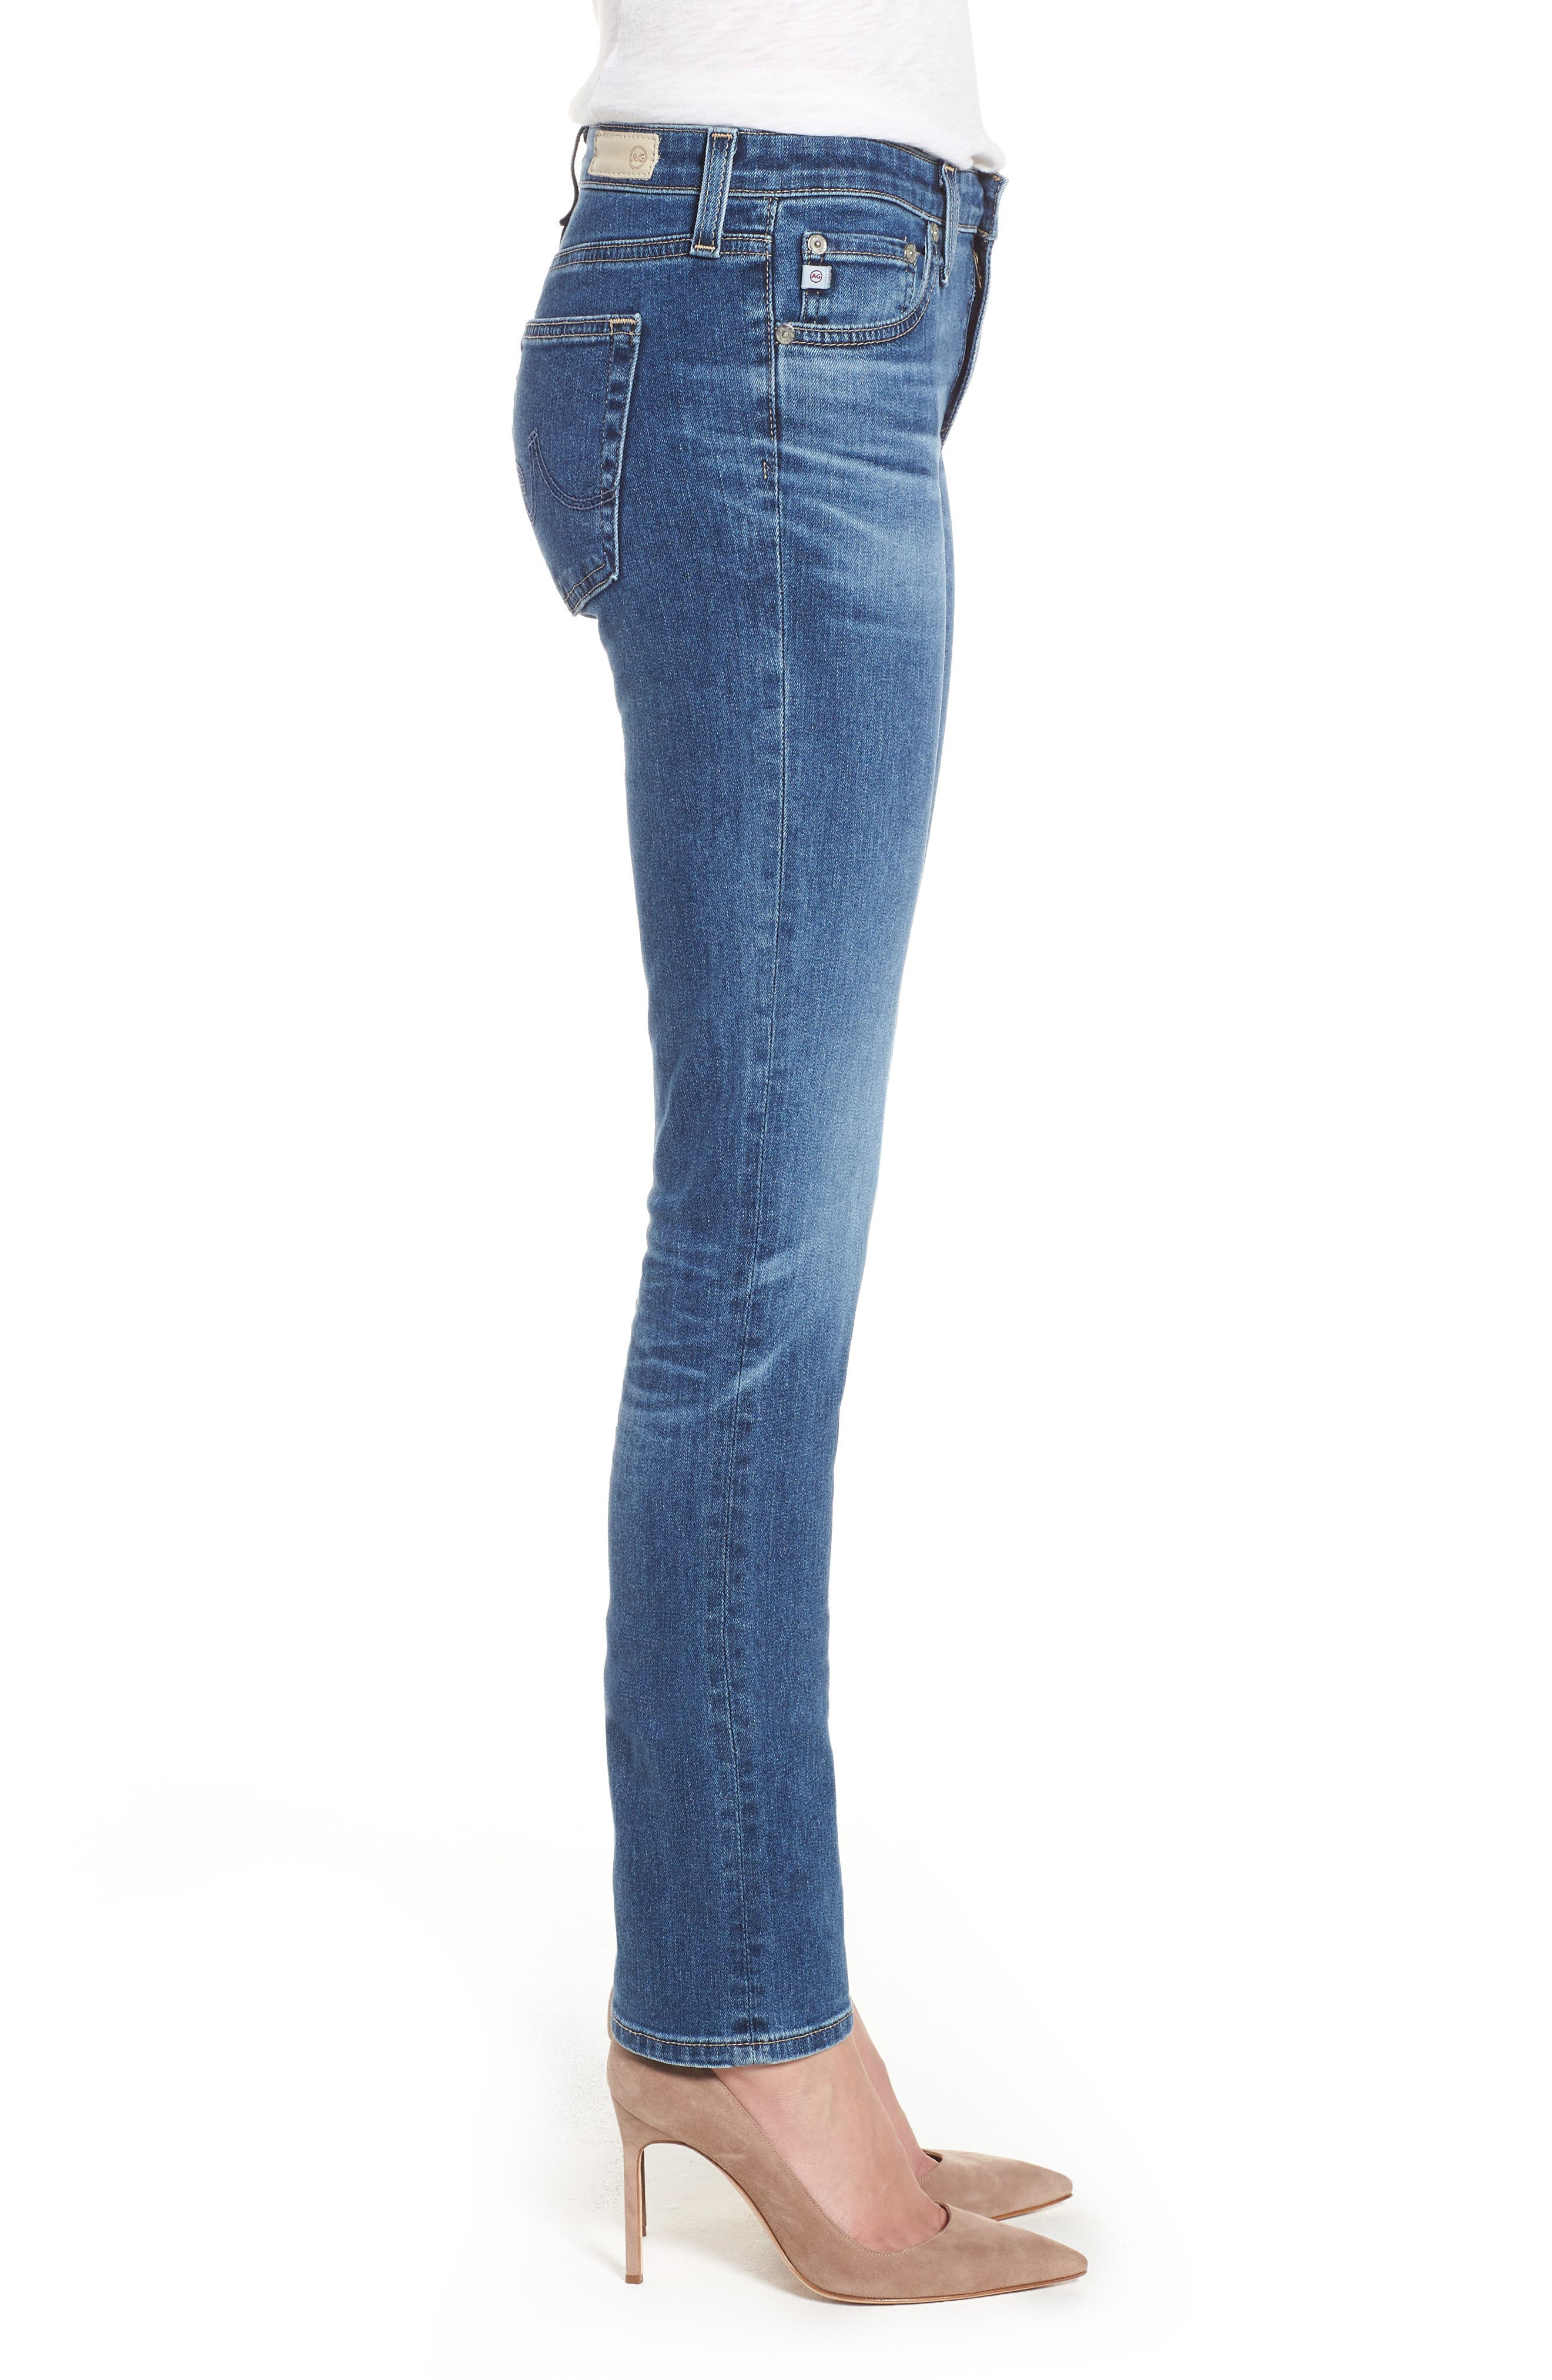 Harper Slim Straight Leg Jeans,                             Alternate thumbnail 3, color,                             10 YEARS CAMBRIA